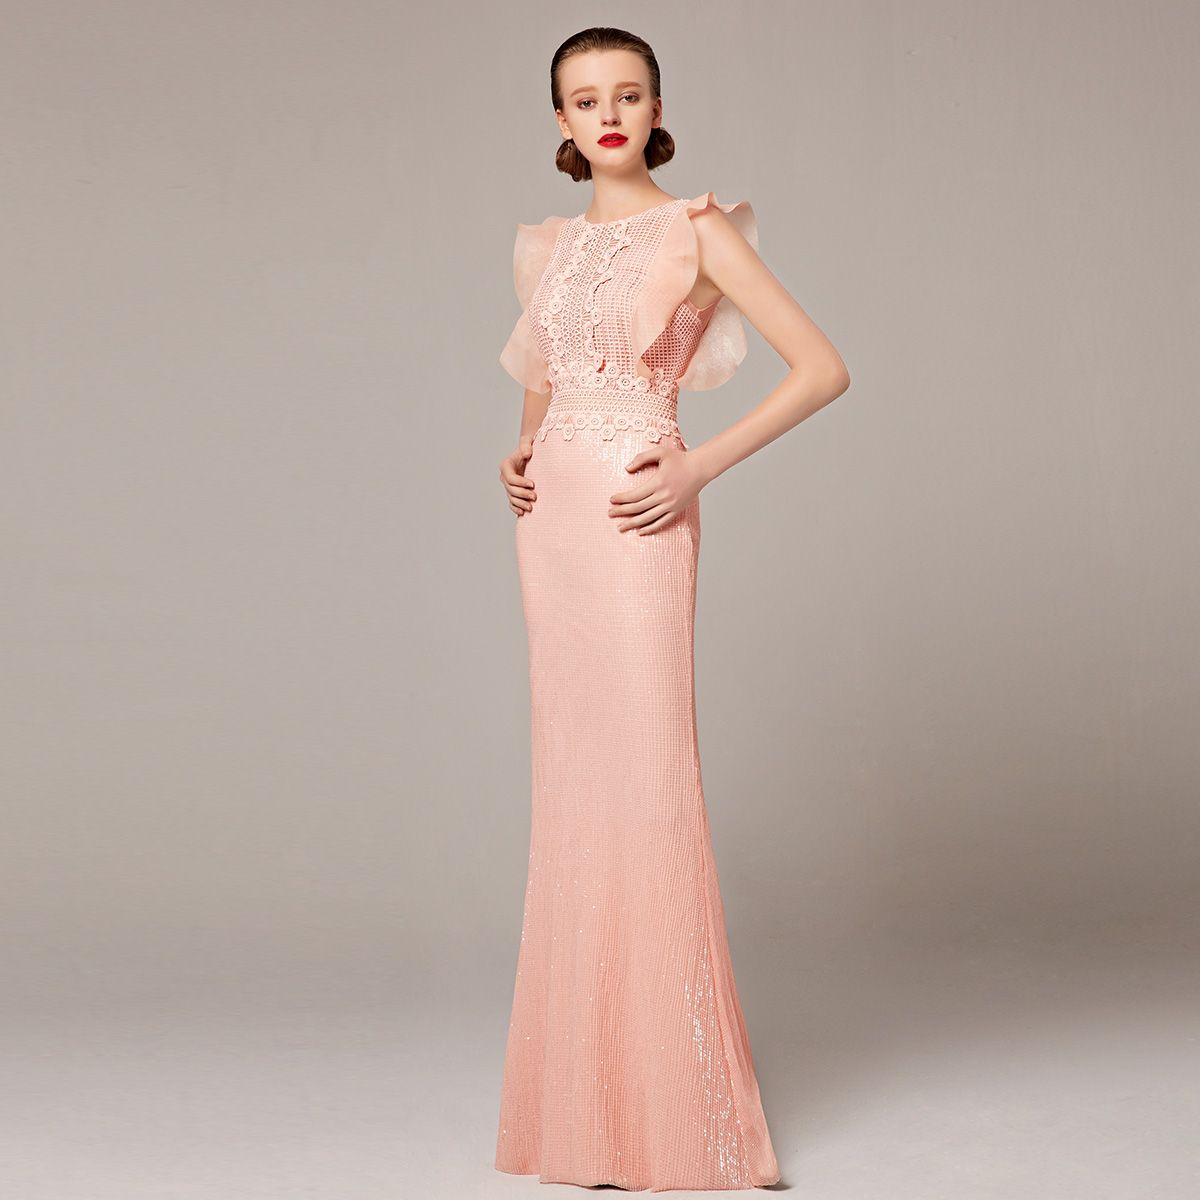 Retro Collection 2016 Coniefox New Styles Sleeveless Sequins Pink Mermaid Prom…